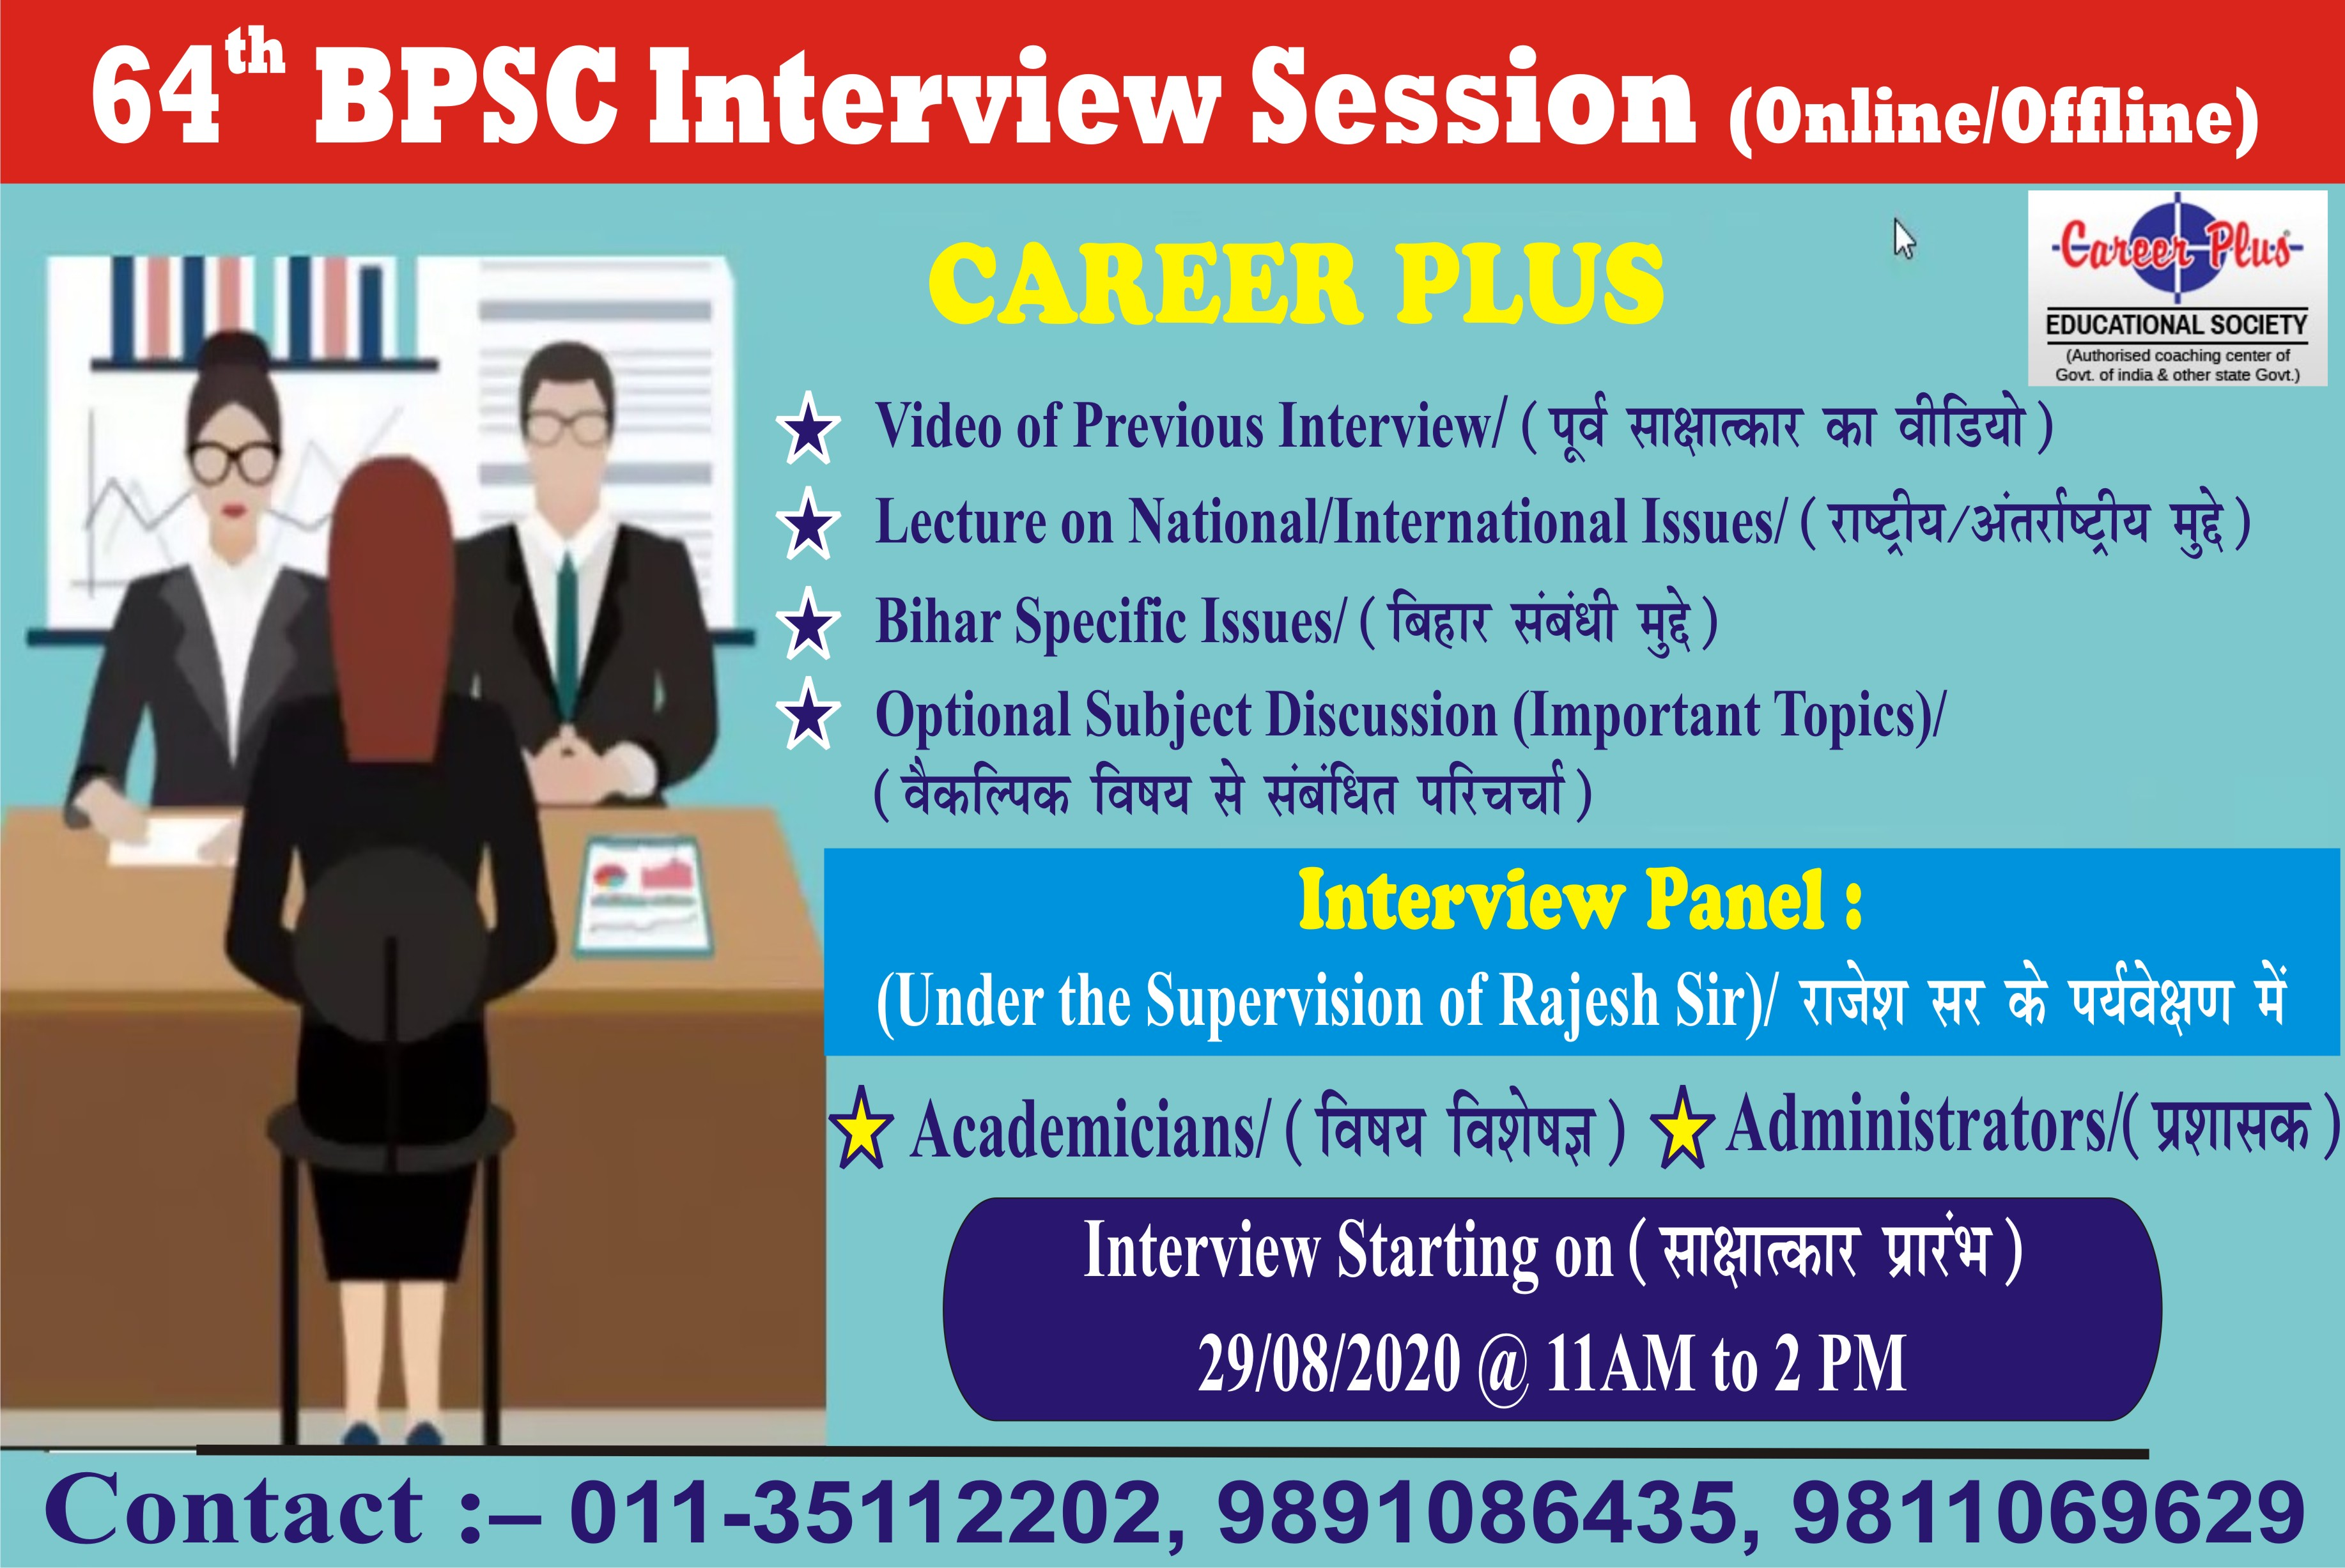 BPSC Live Interview Usha Patna by Career Plus Online cover